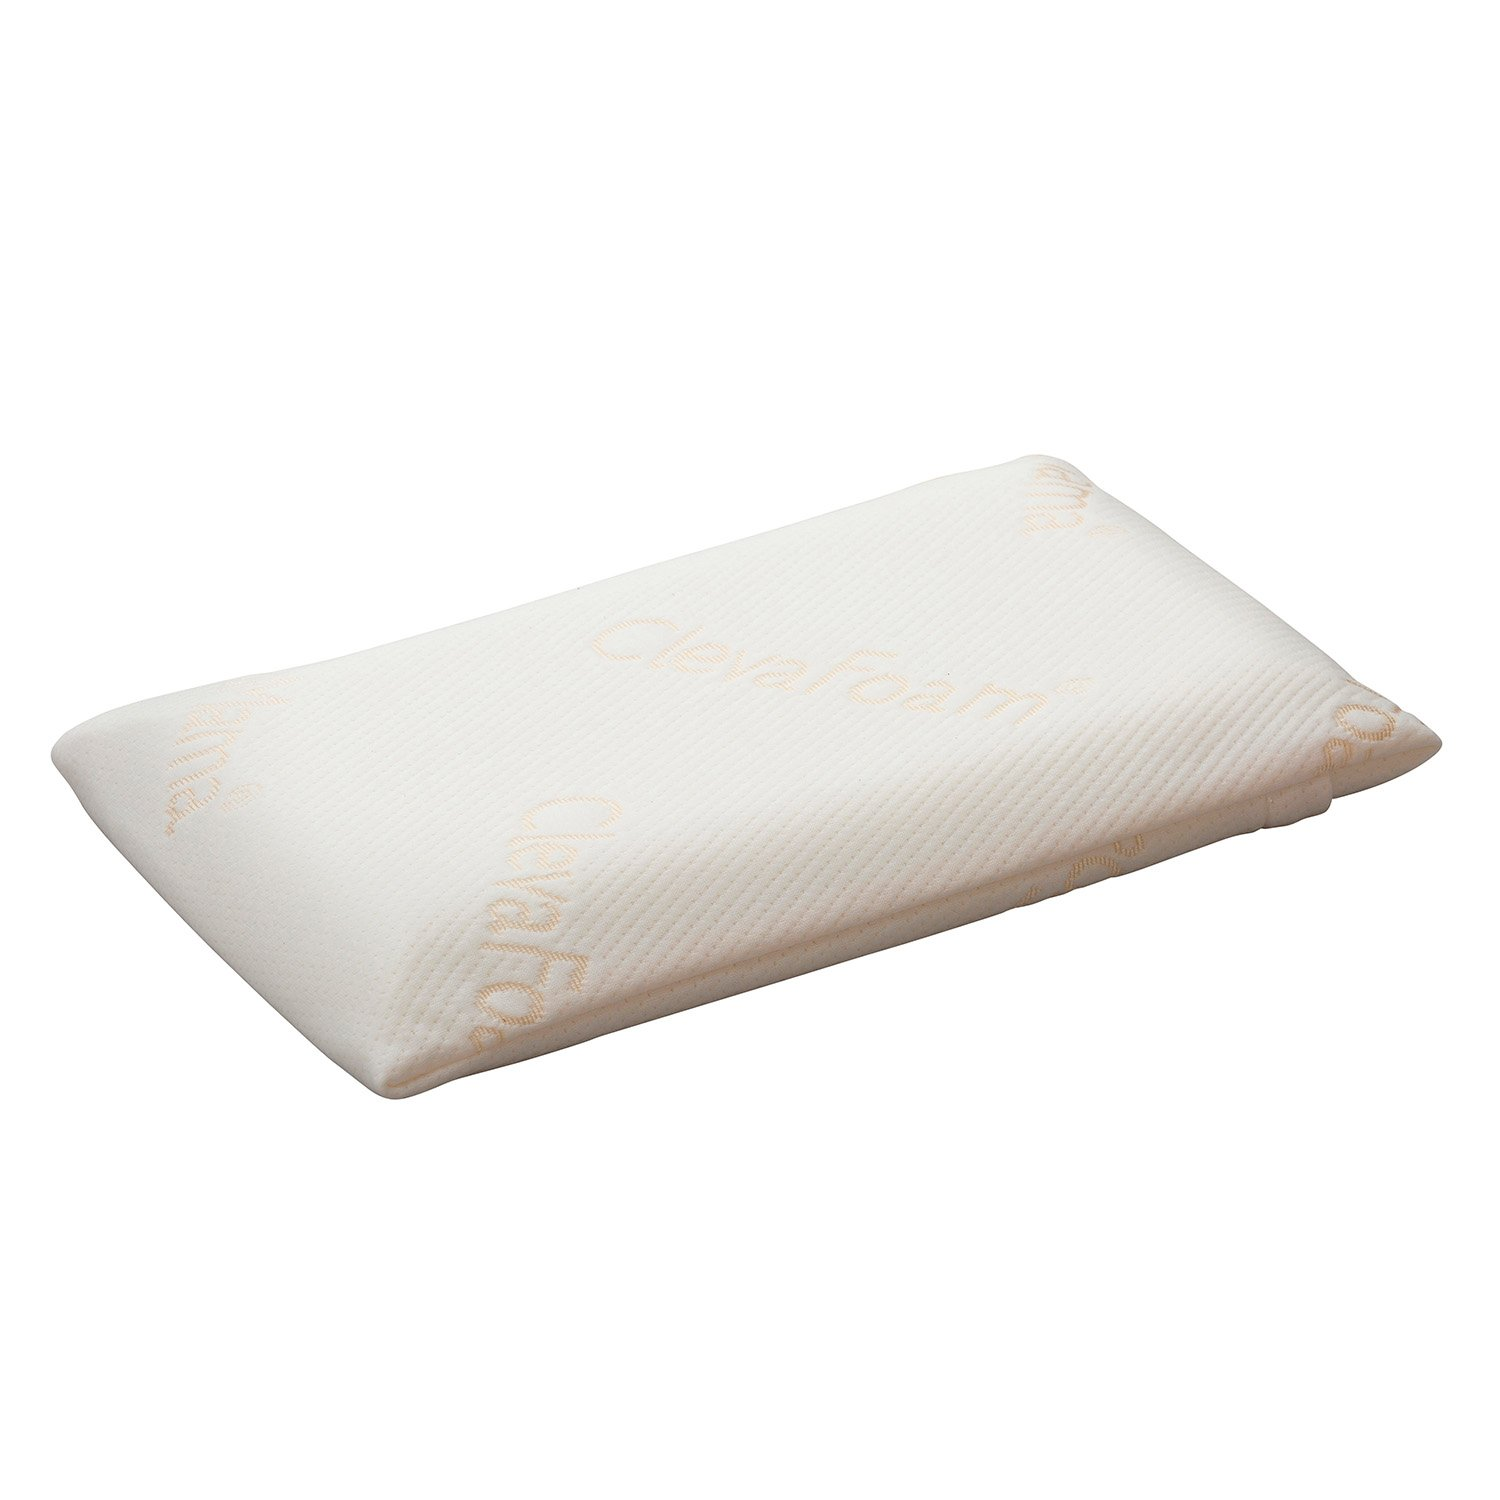 Clevamama ClevaFoam Toddler Pillow with Replacement Pillow Case (Blue)